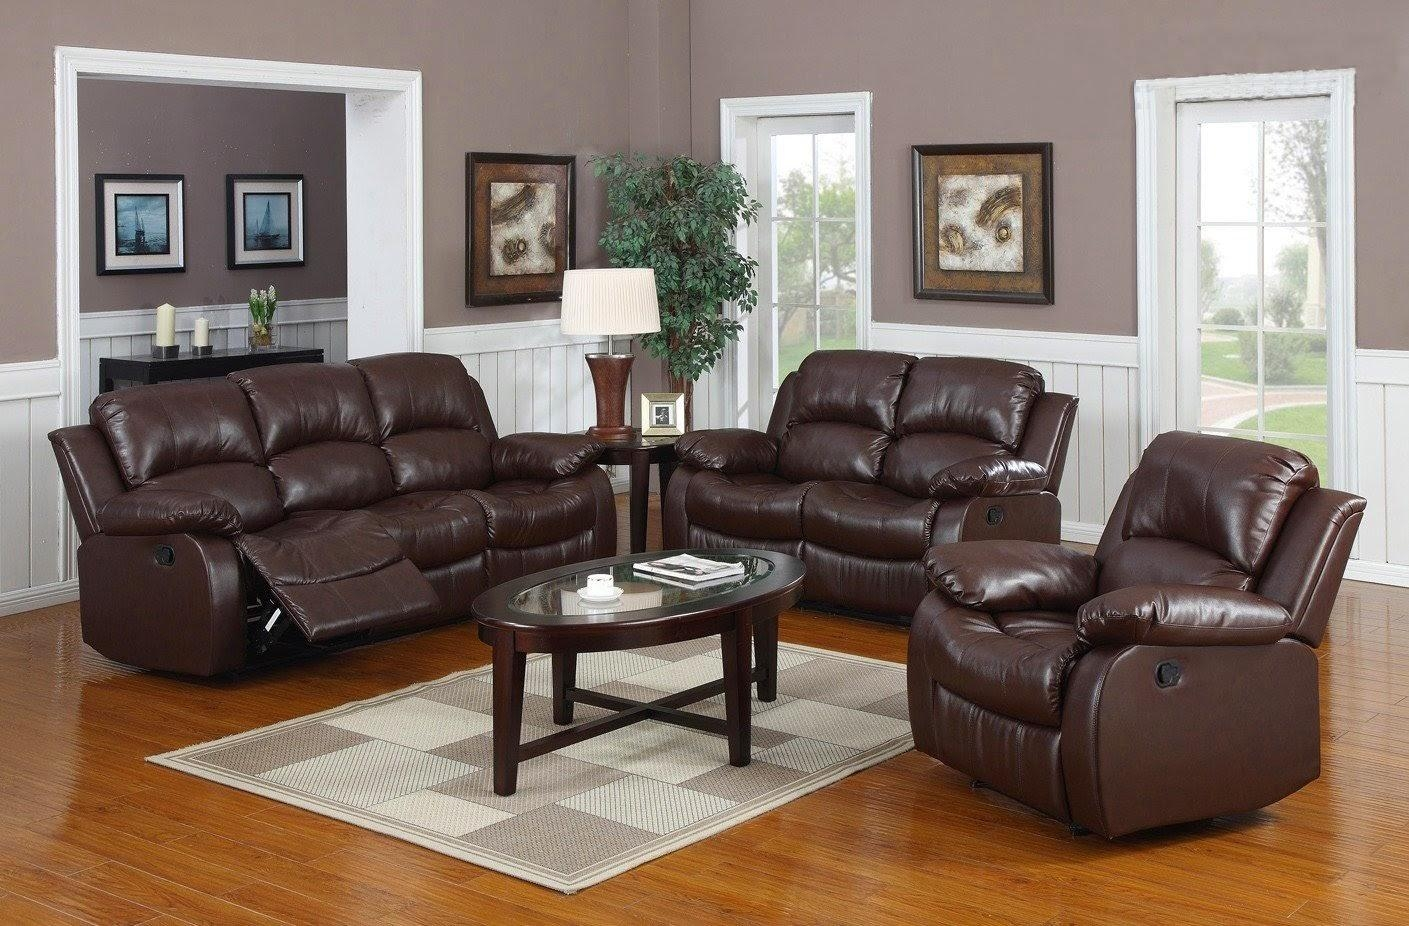 Sofas Center : Costco Leather Reclining Sofa True Innovations Inside Berkline Sofa (View 13 of 20)